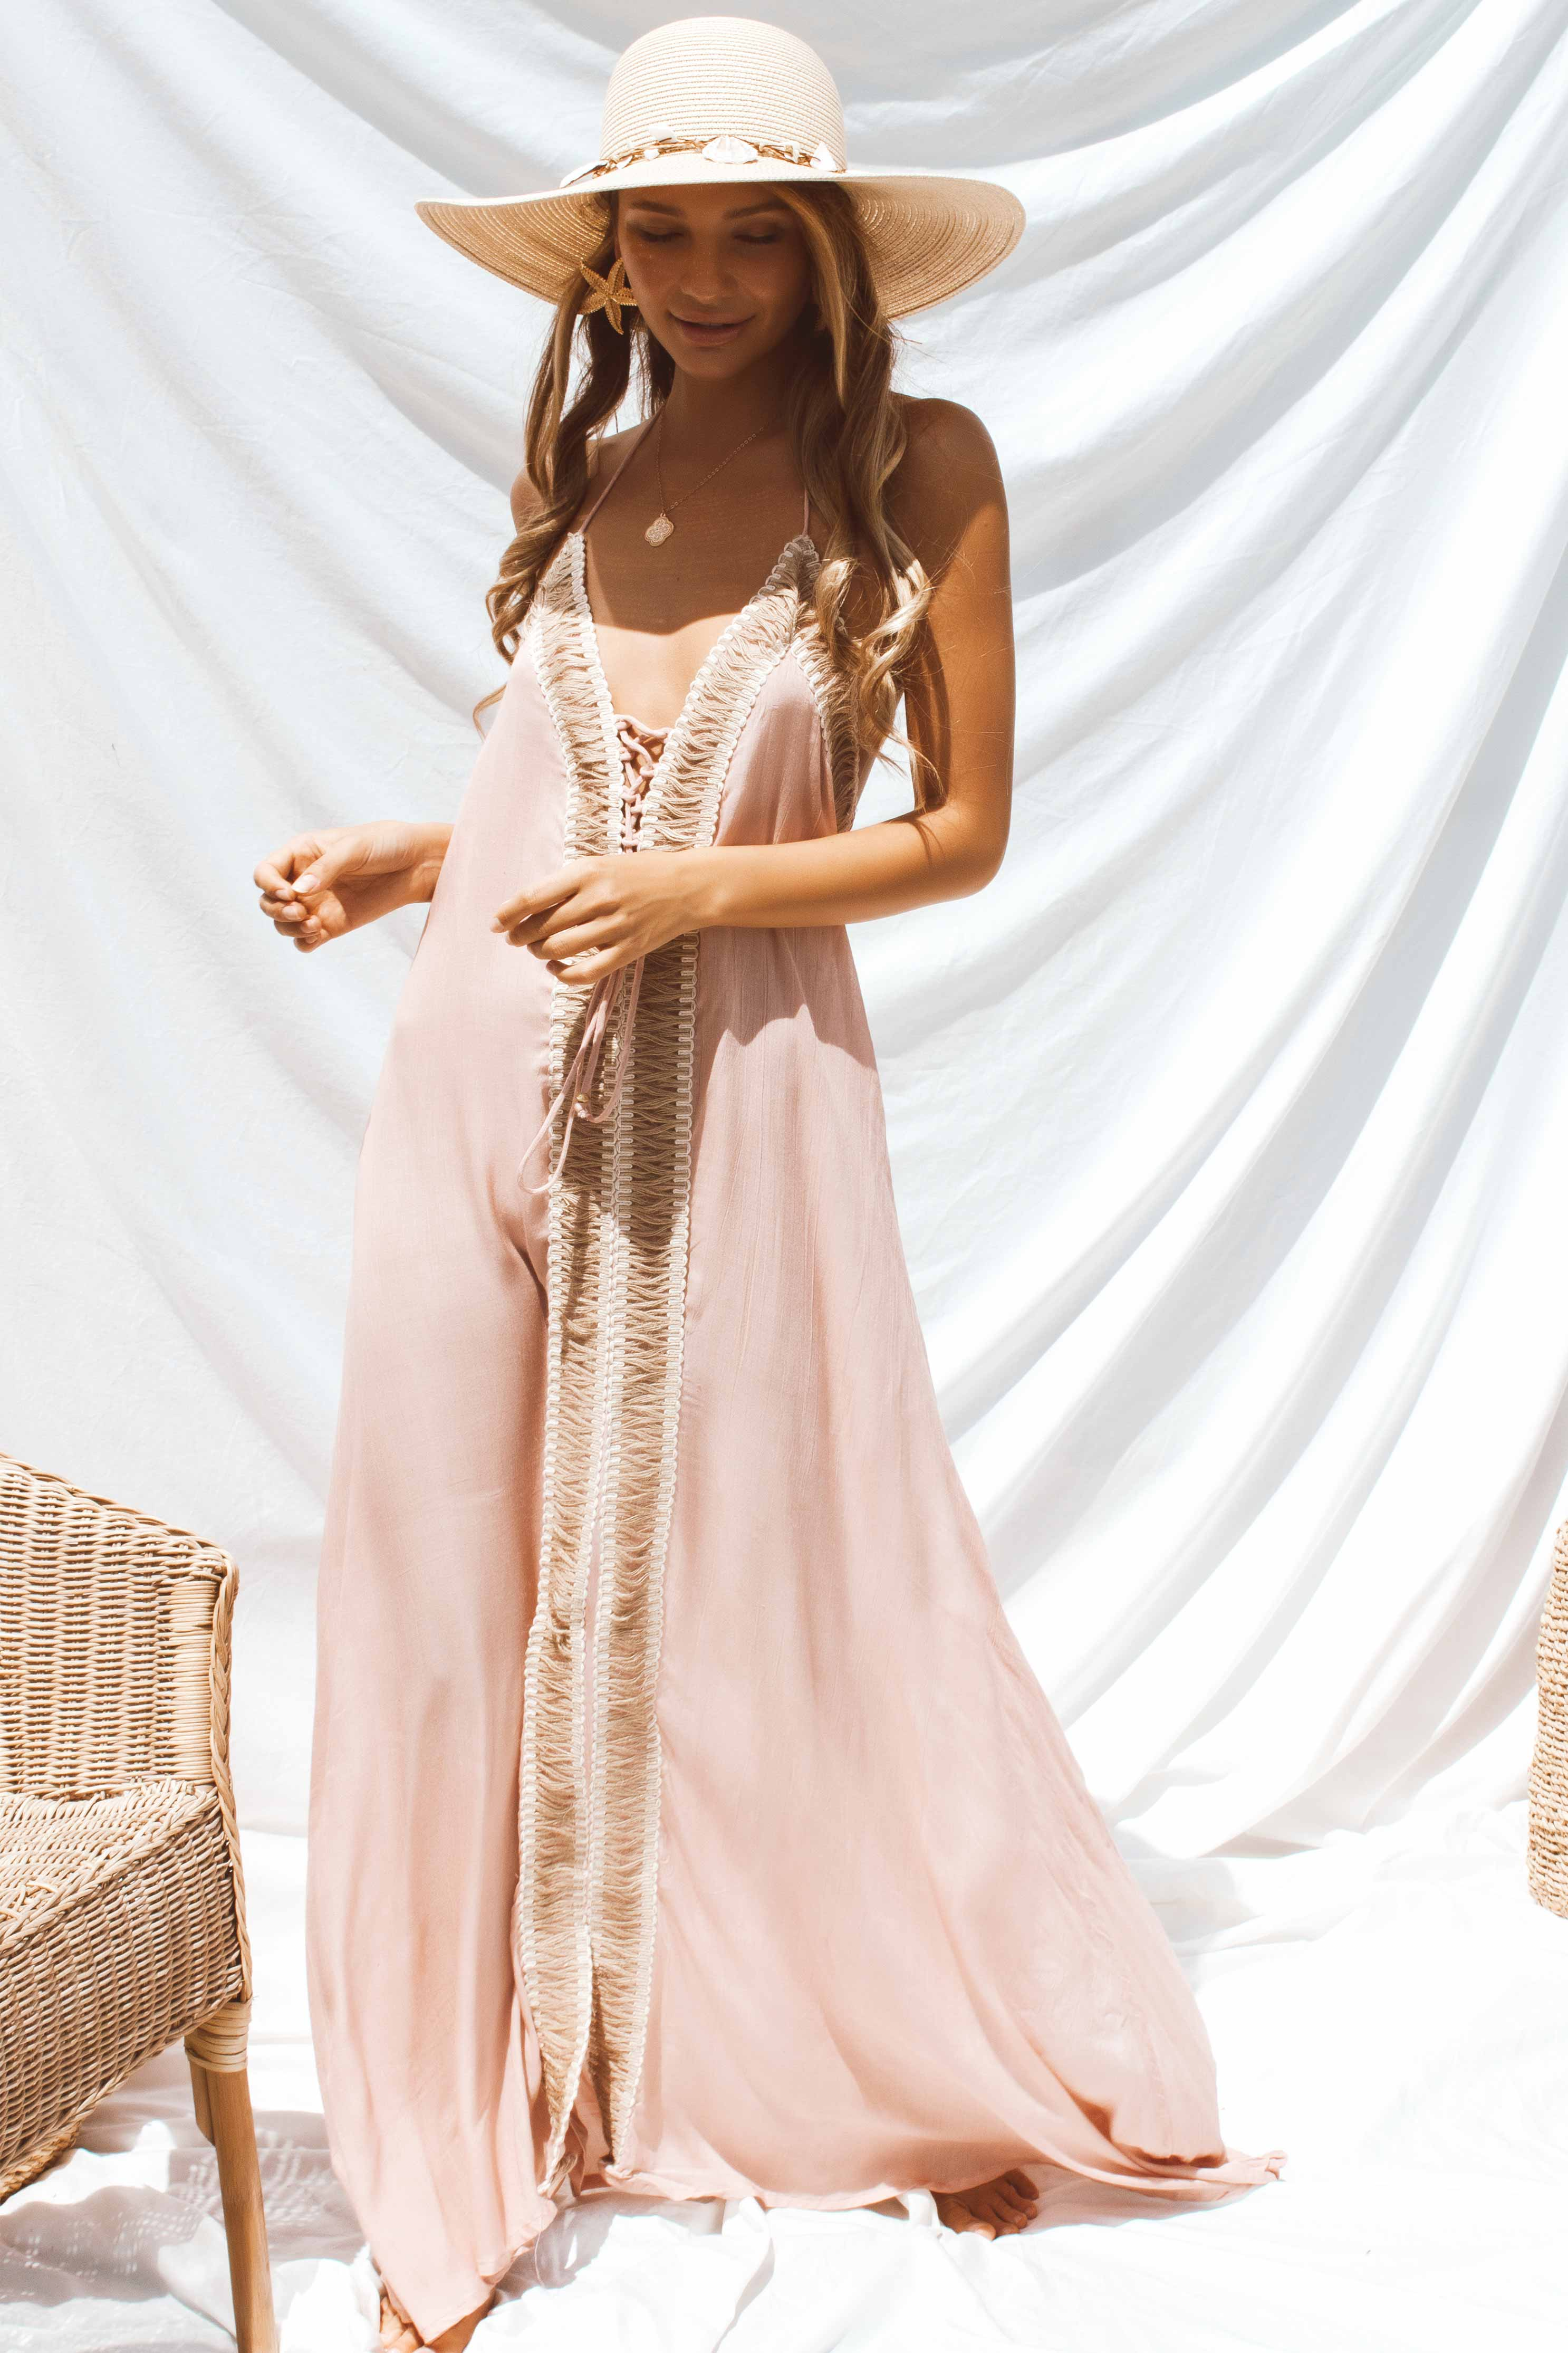 NEVADA DRESS IN PINK - Chic Le Frique